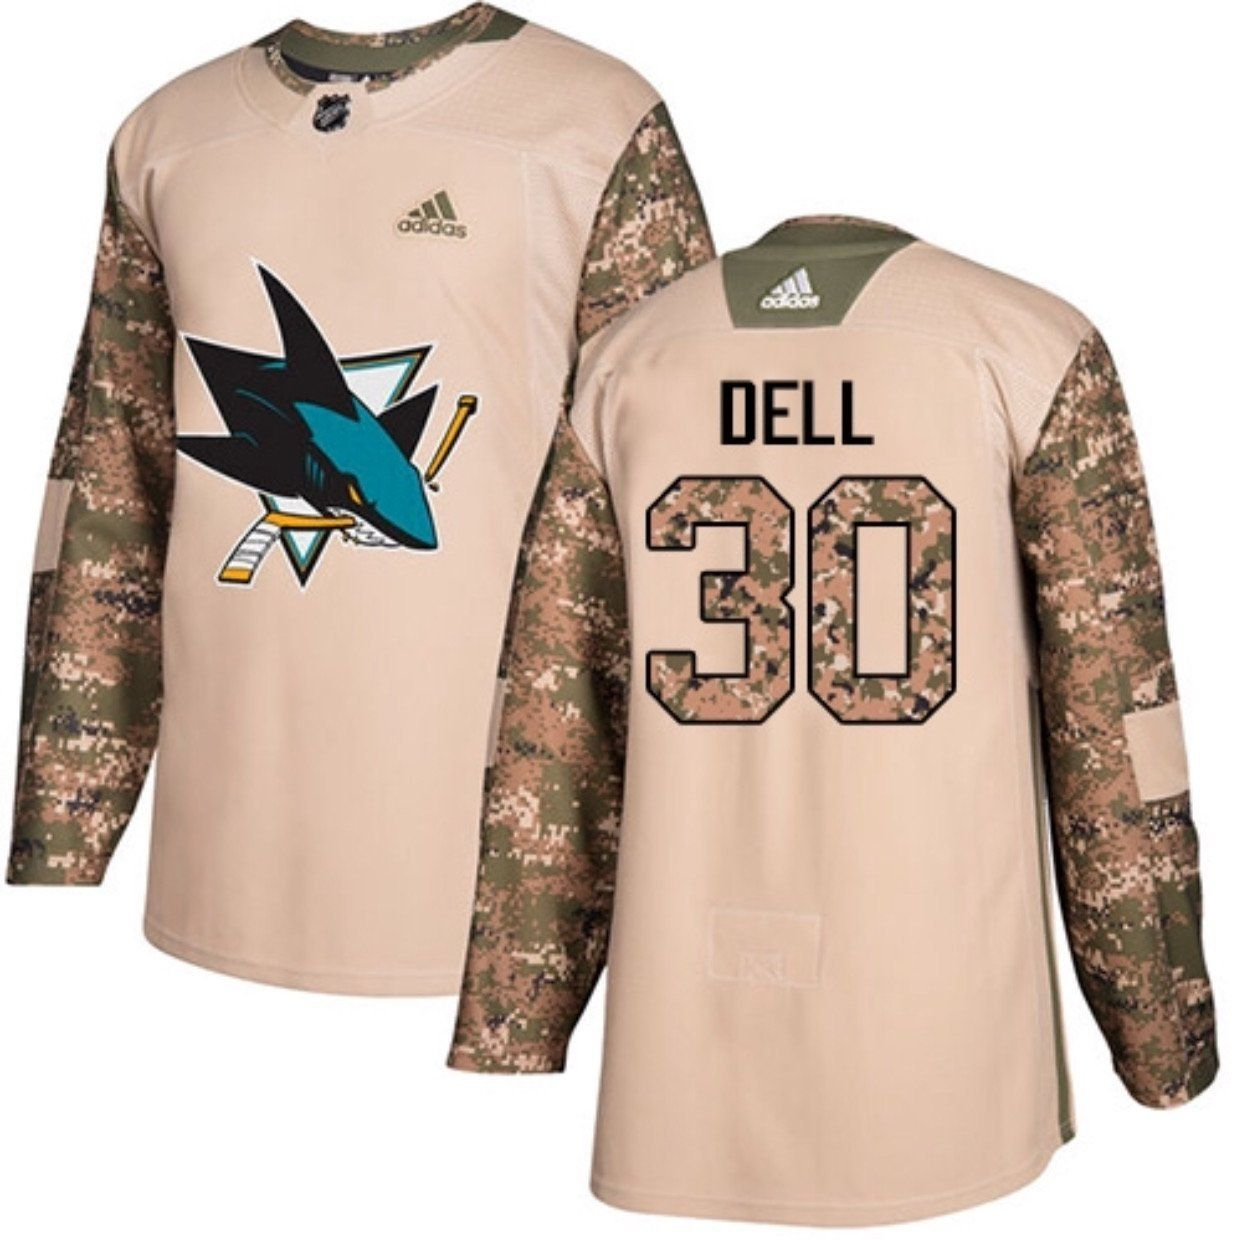 2f21842be59 San Jose Sharks Premier Adidas NHL Home & Road Jerseys | Products ...